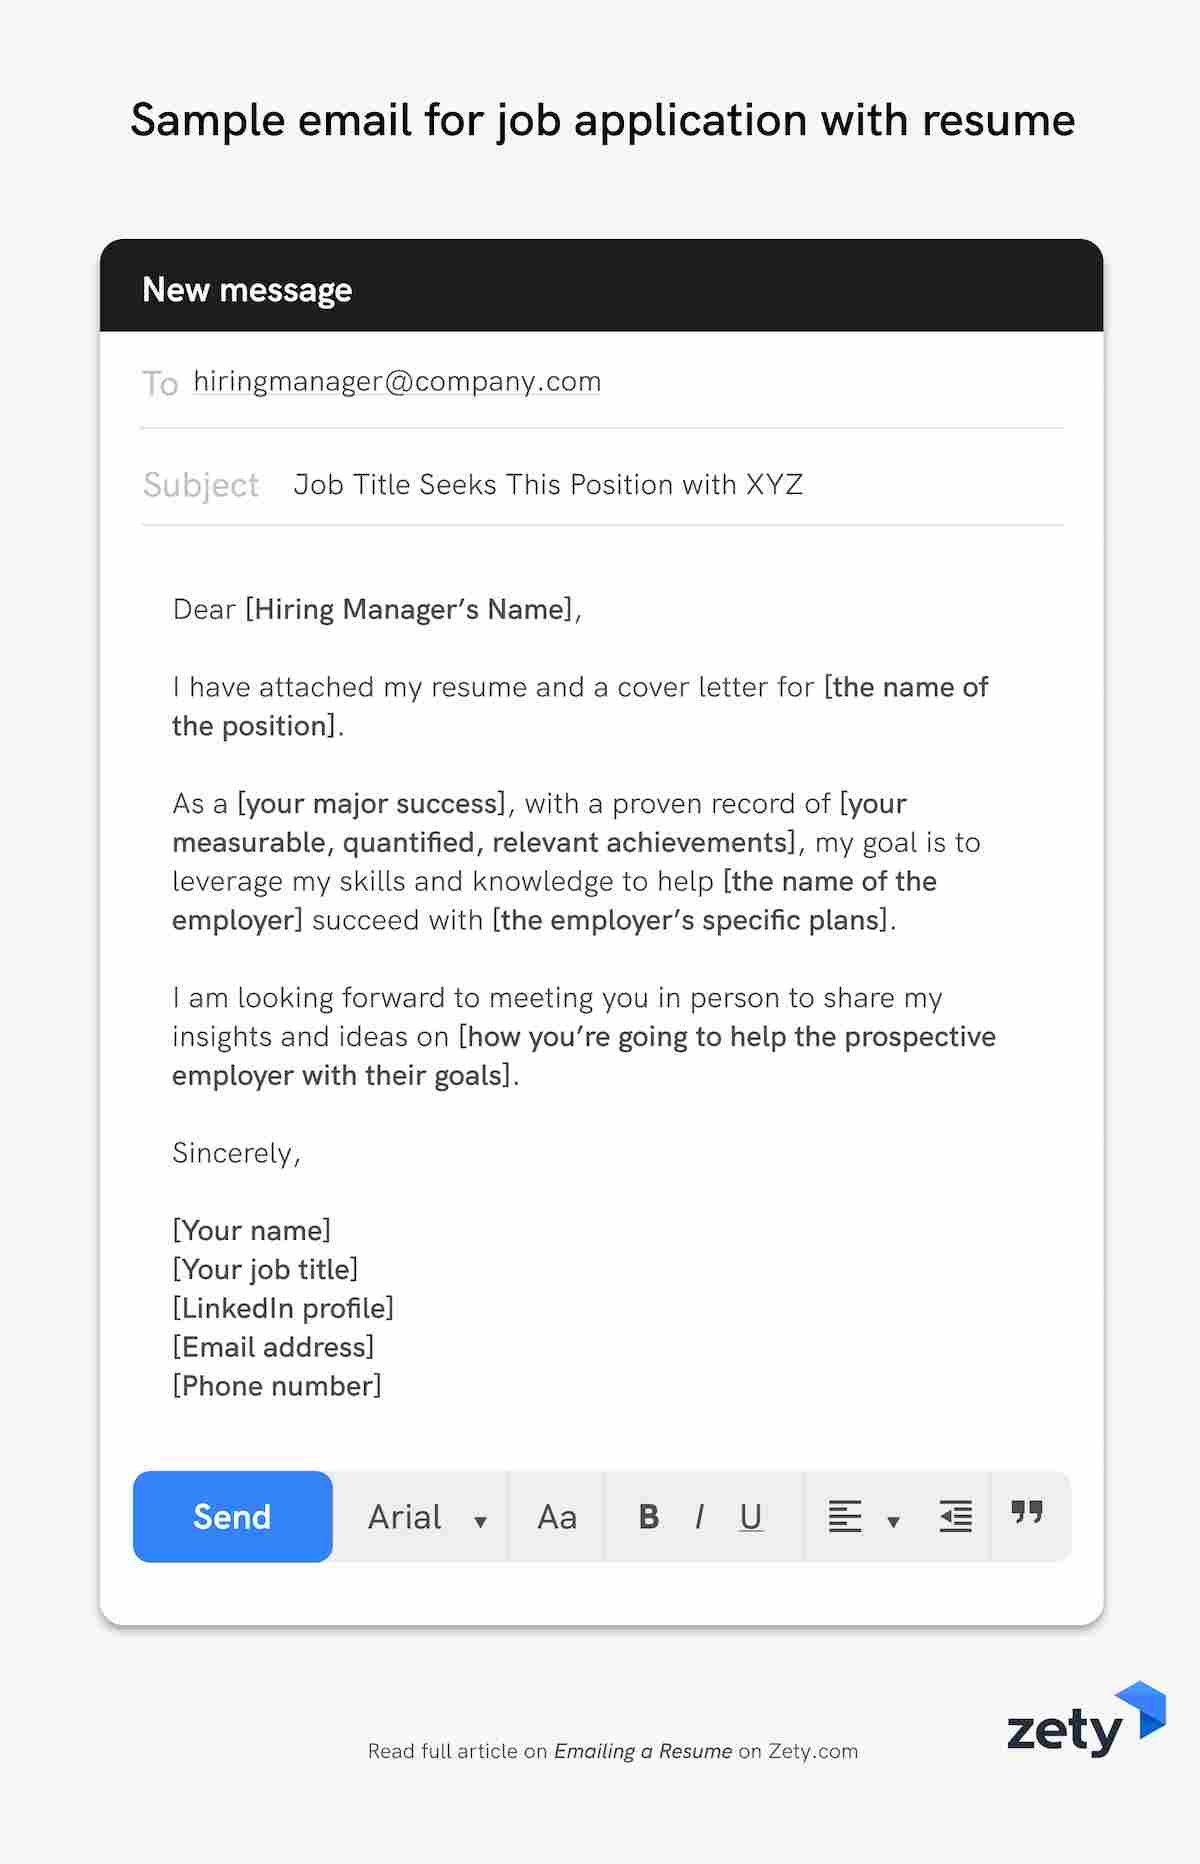 emailing resume job application email samples submitting your via sample for with aws adp Resume Submitting Your Resume Via Email